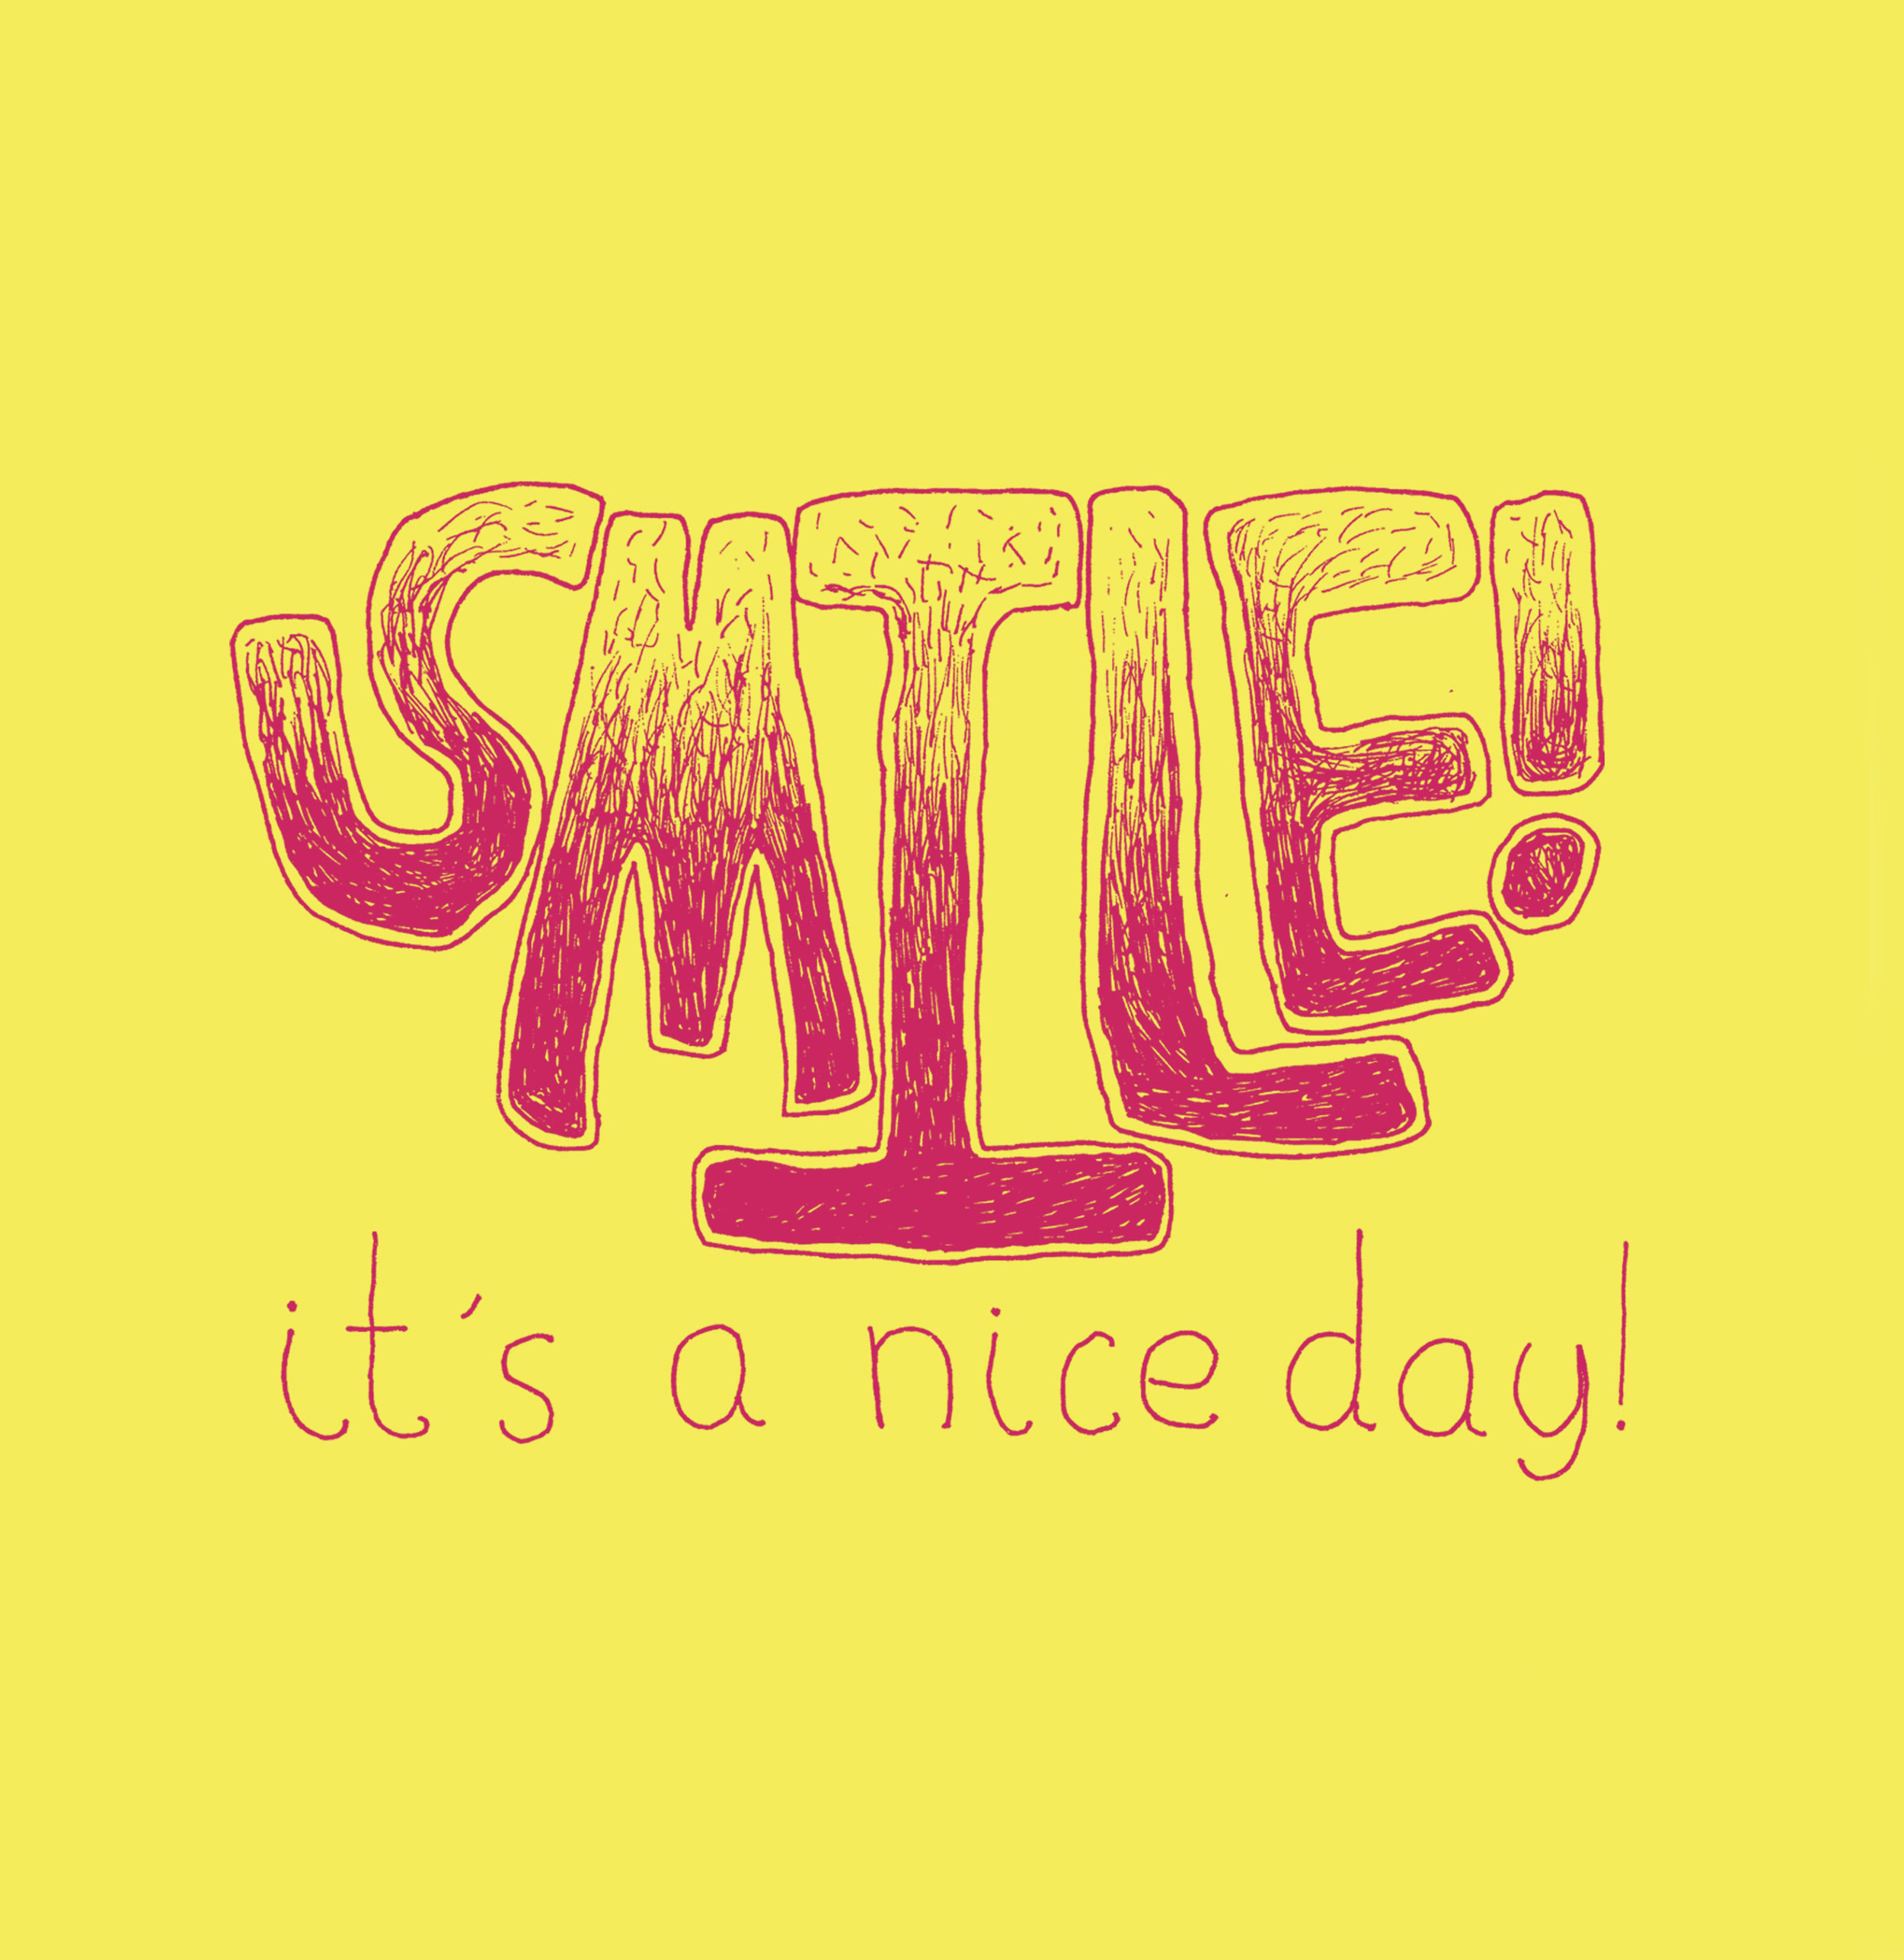 Smile its a nice day!.jpg